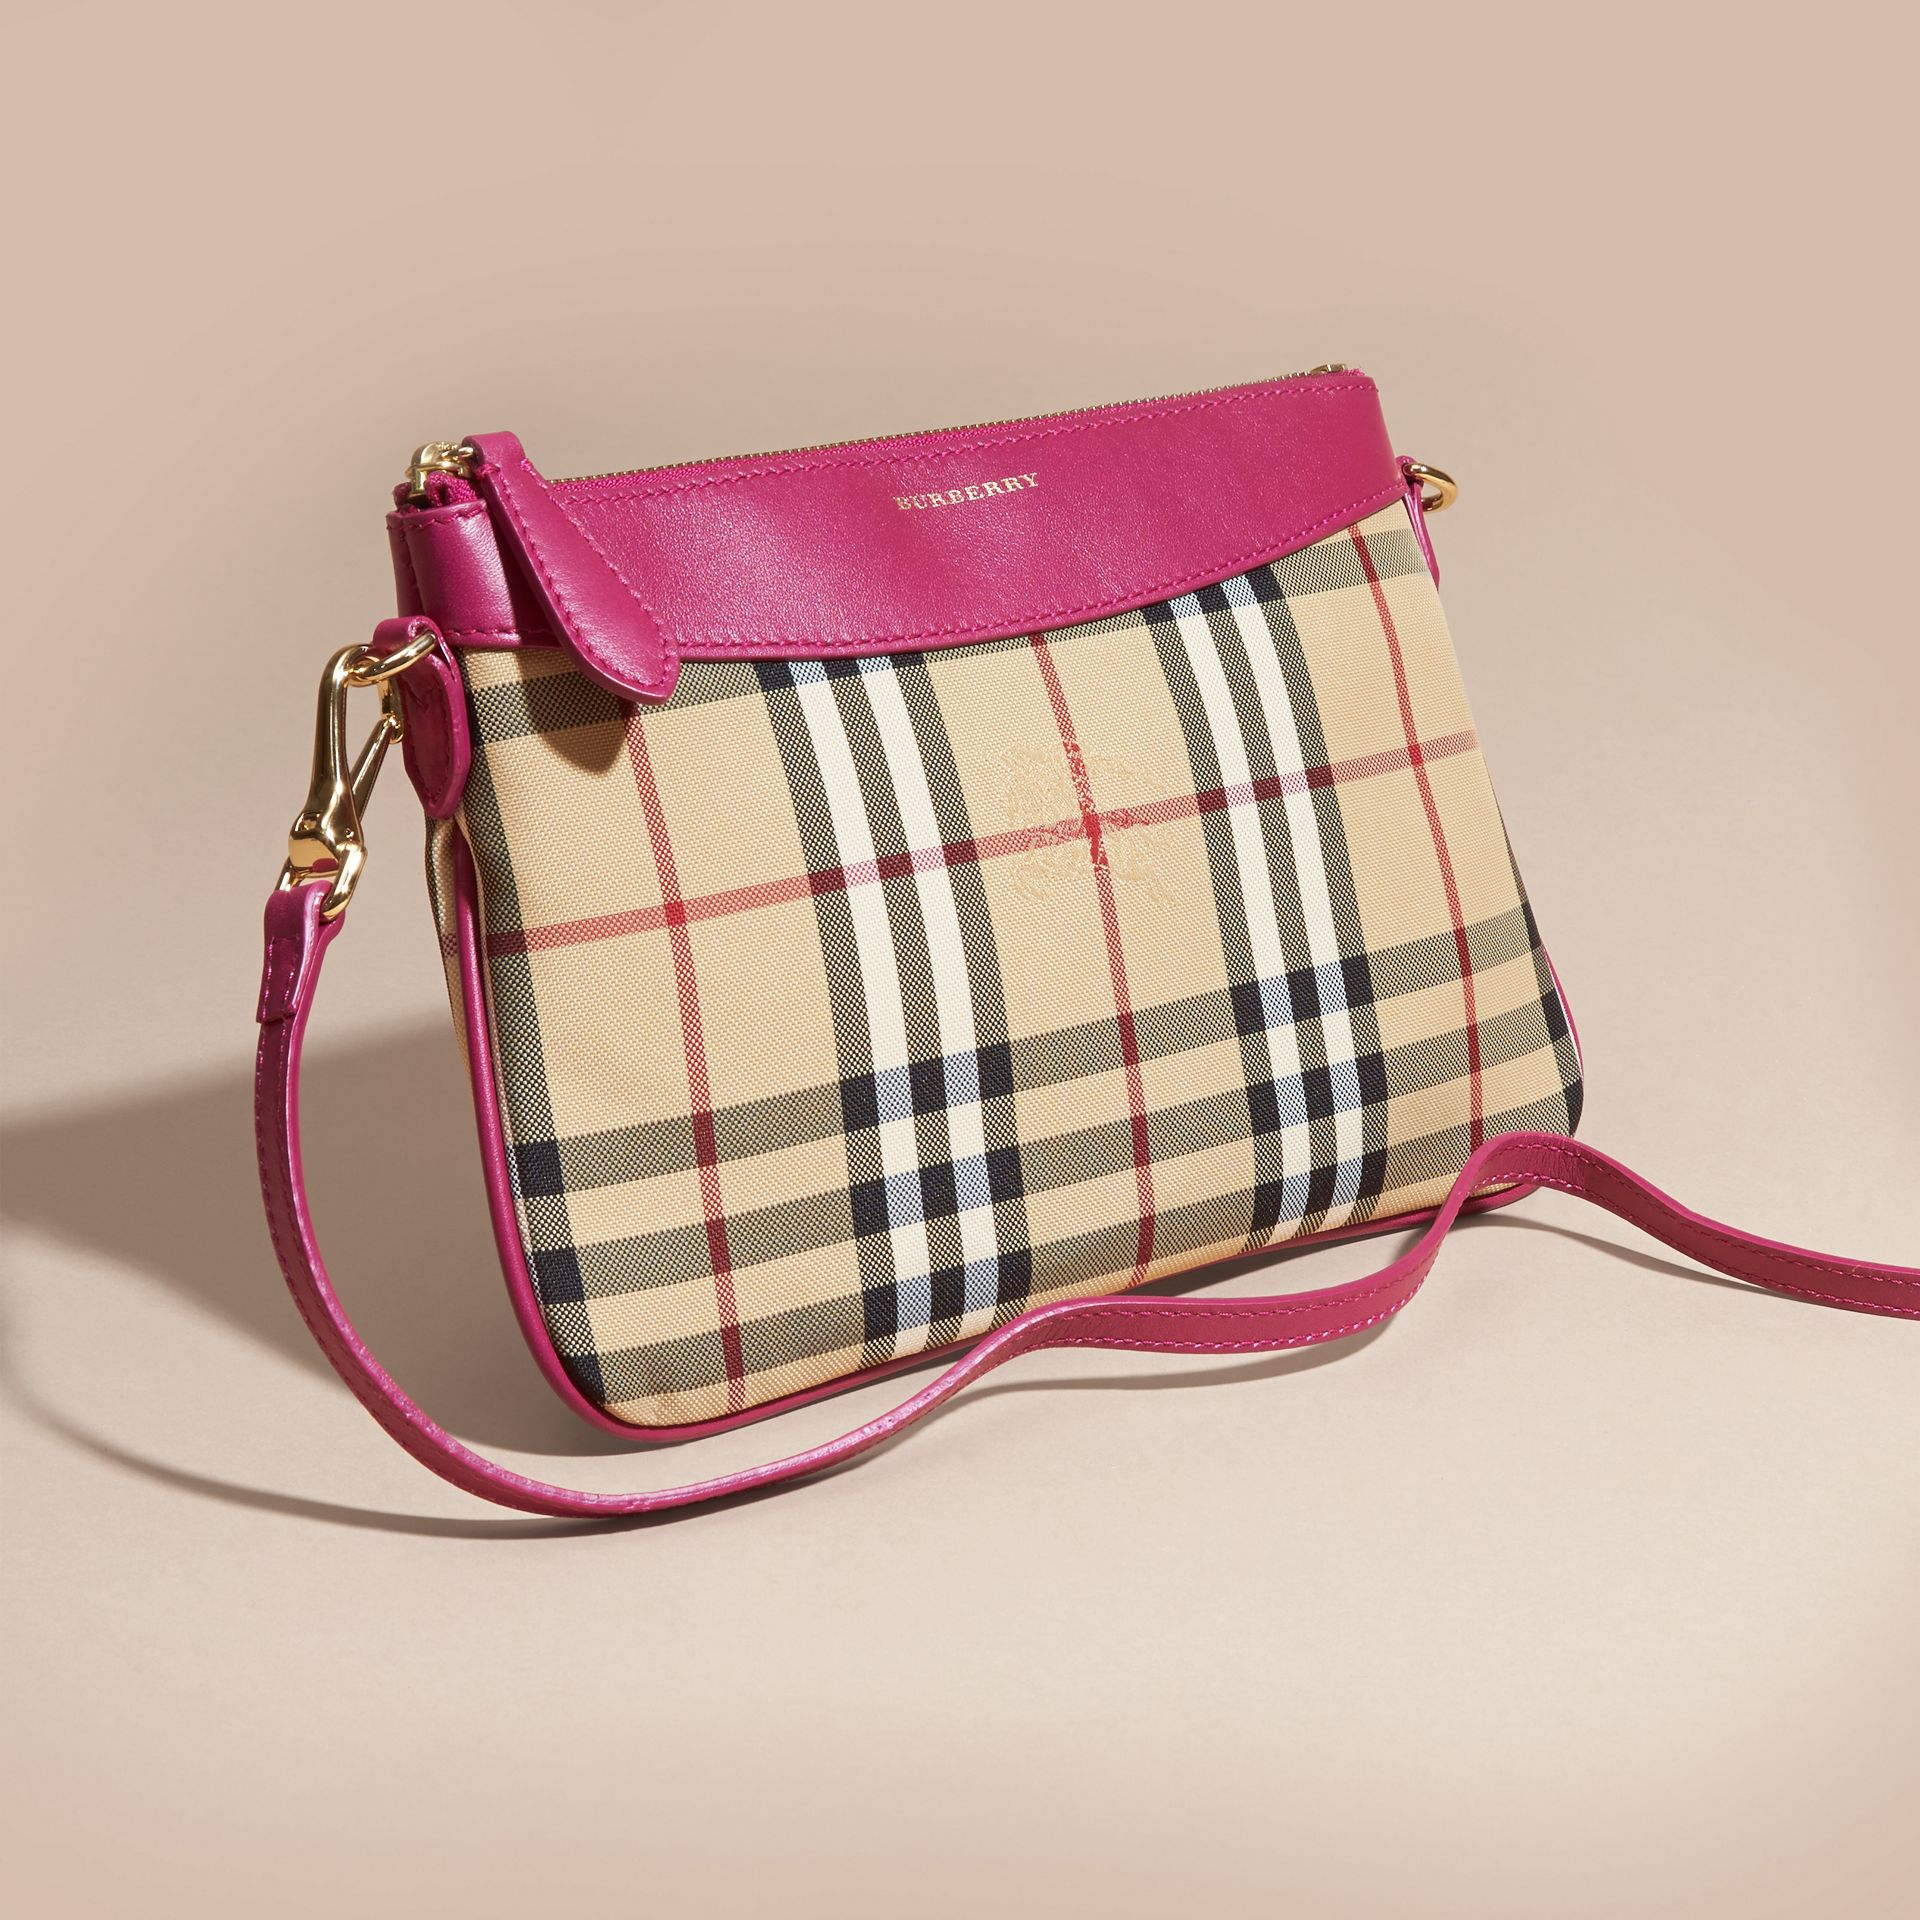 Horseferry Check and Leather Clutch Bag Brilliant Fuchsia - gallery image 8